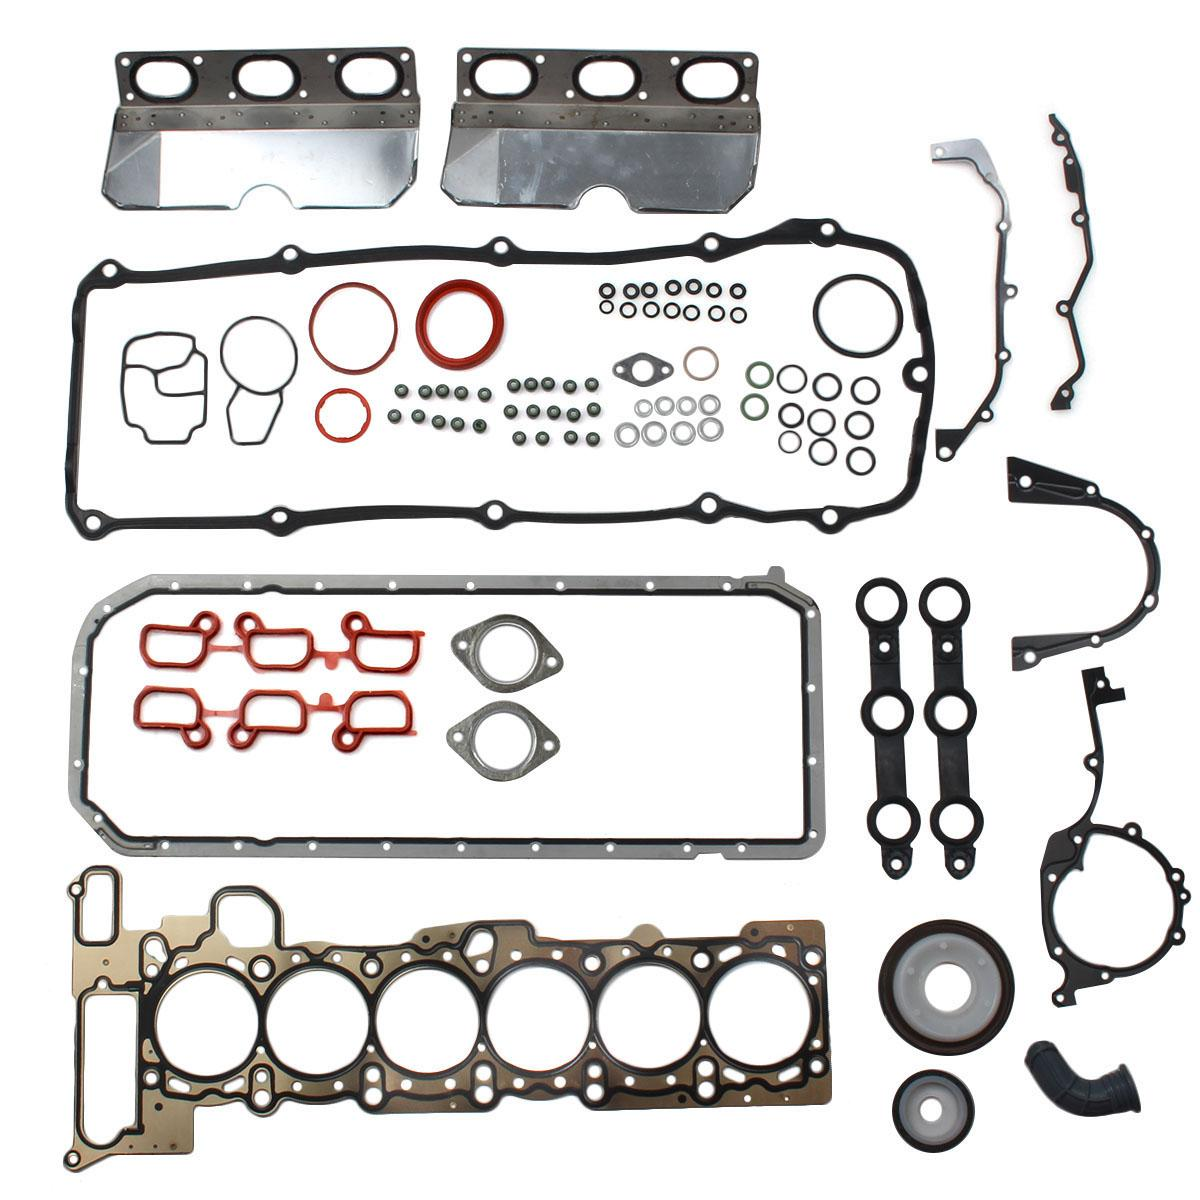 2012 Bmw X5 M Head Gasket: Cylinder Head Gasket Set For 01-06 BMW 3 5 X3 X5 Z3 Z4 2